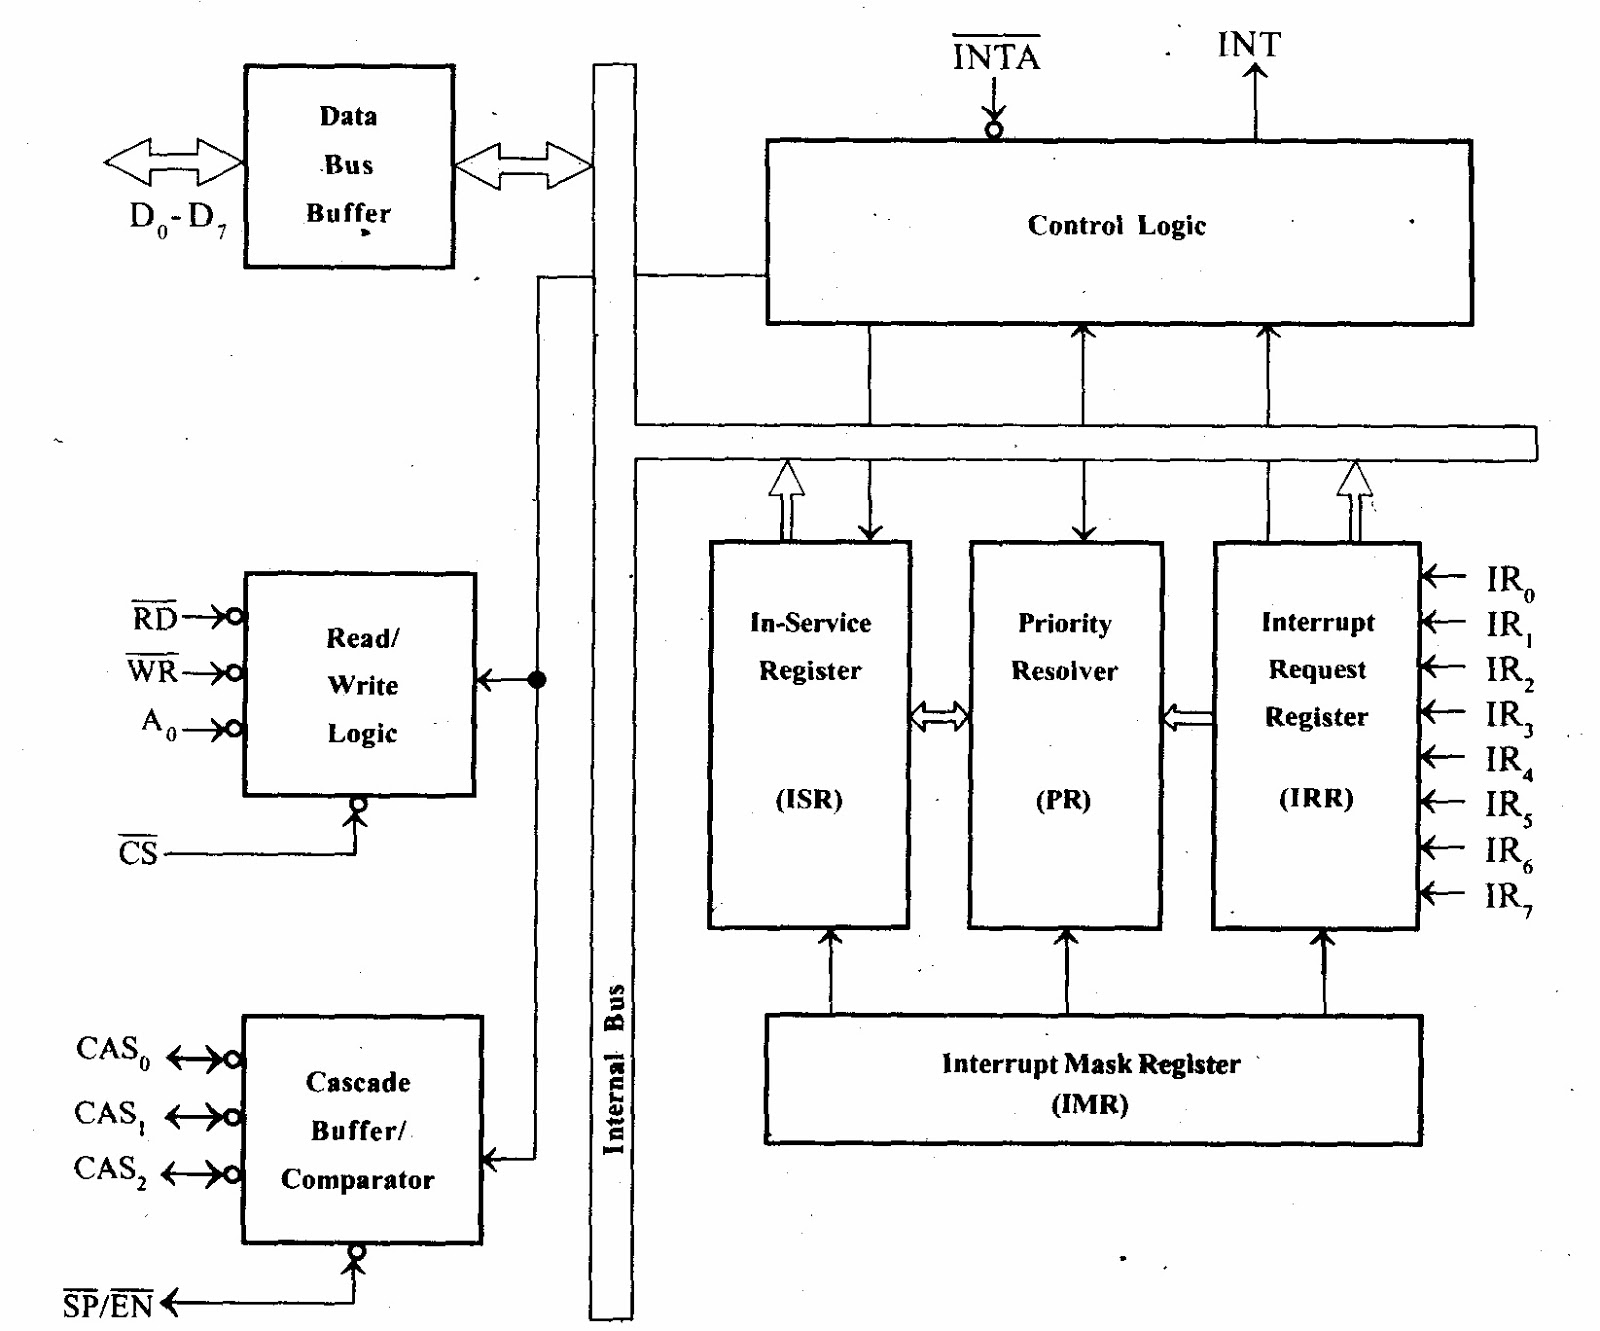 hight resolution of features functional block diagram of 8259 processor